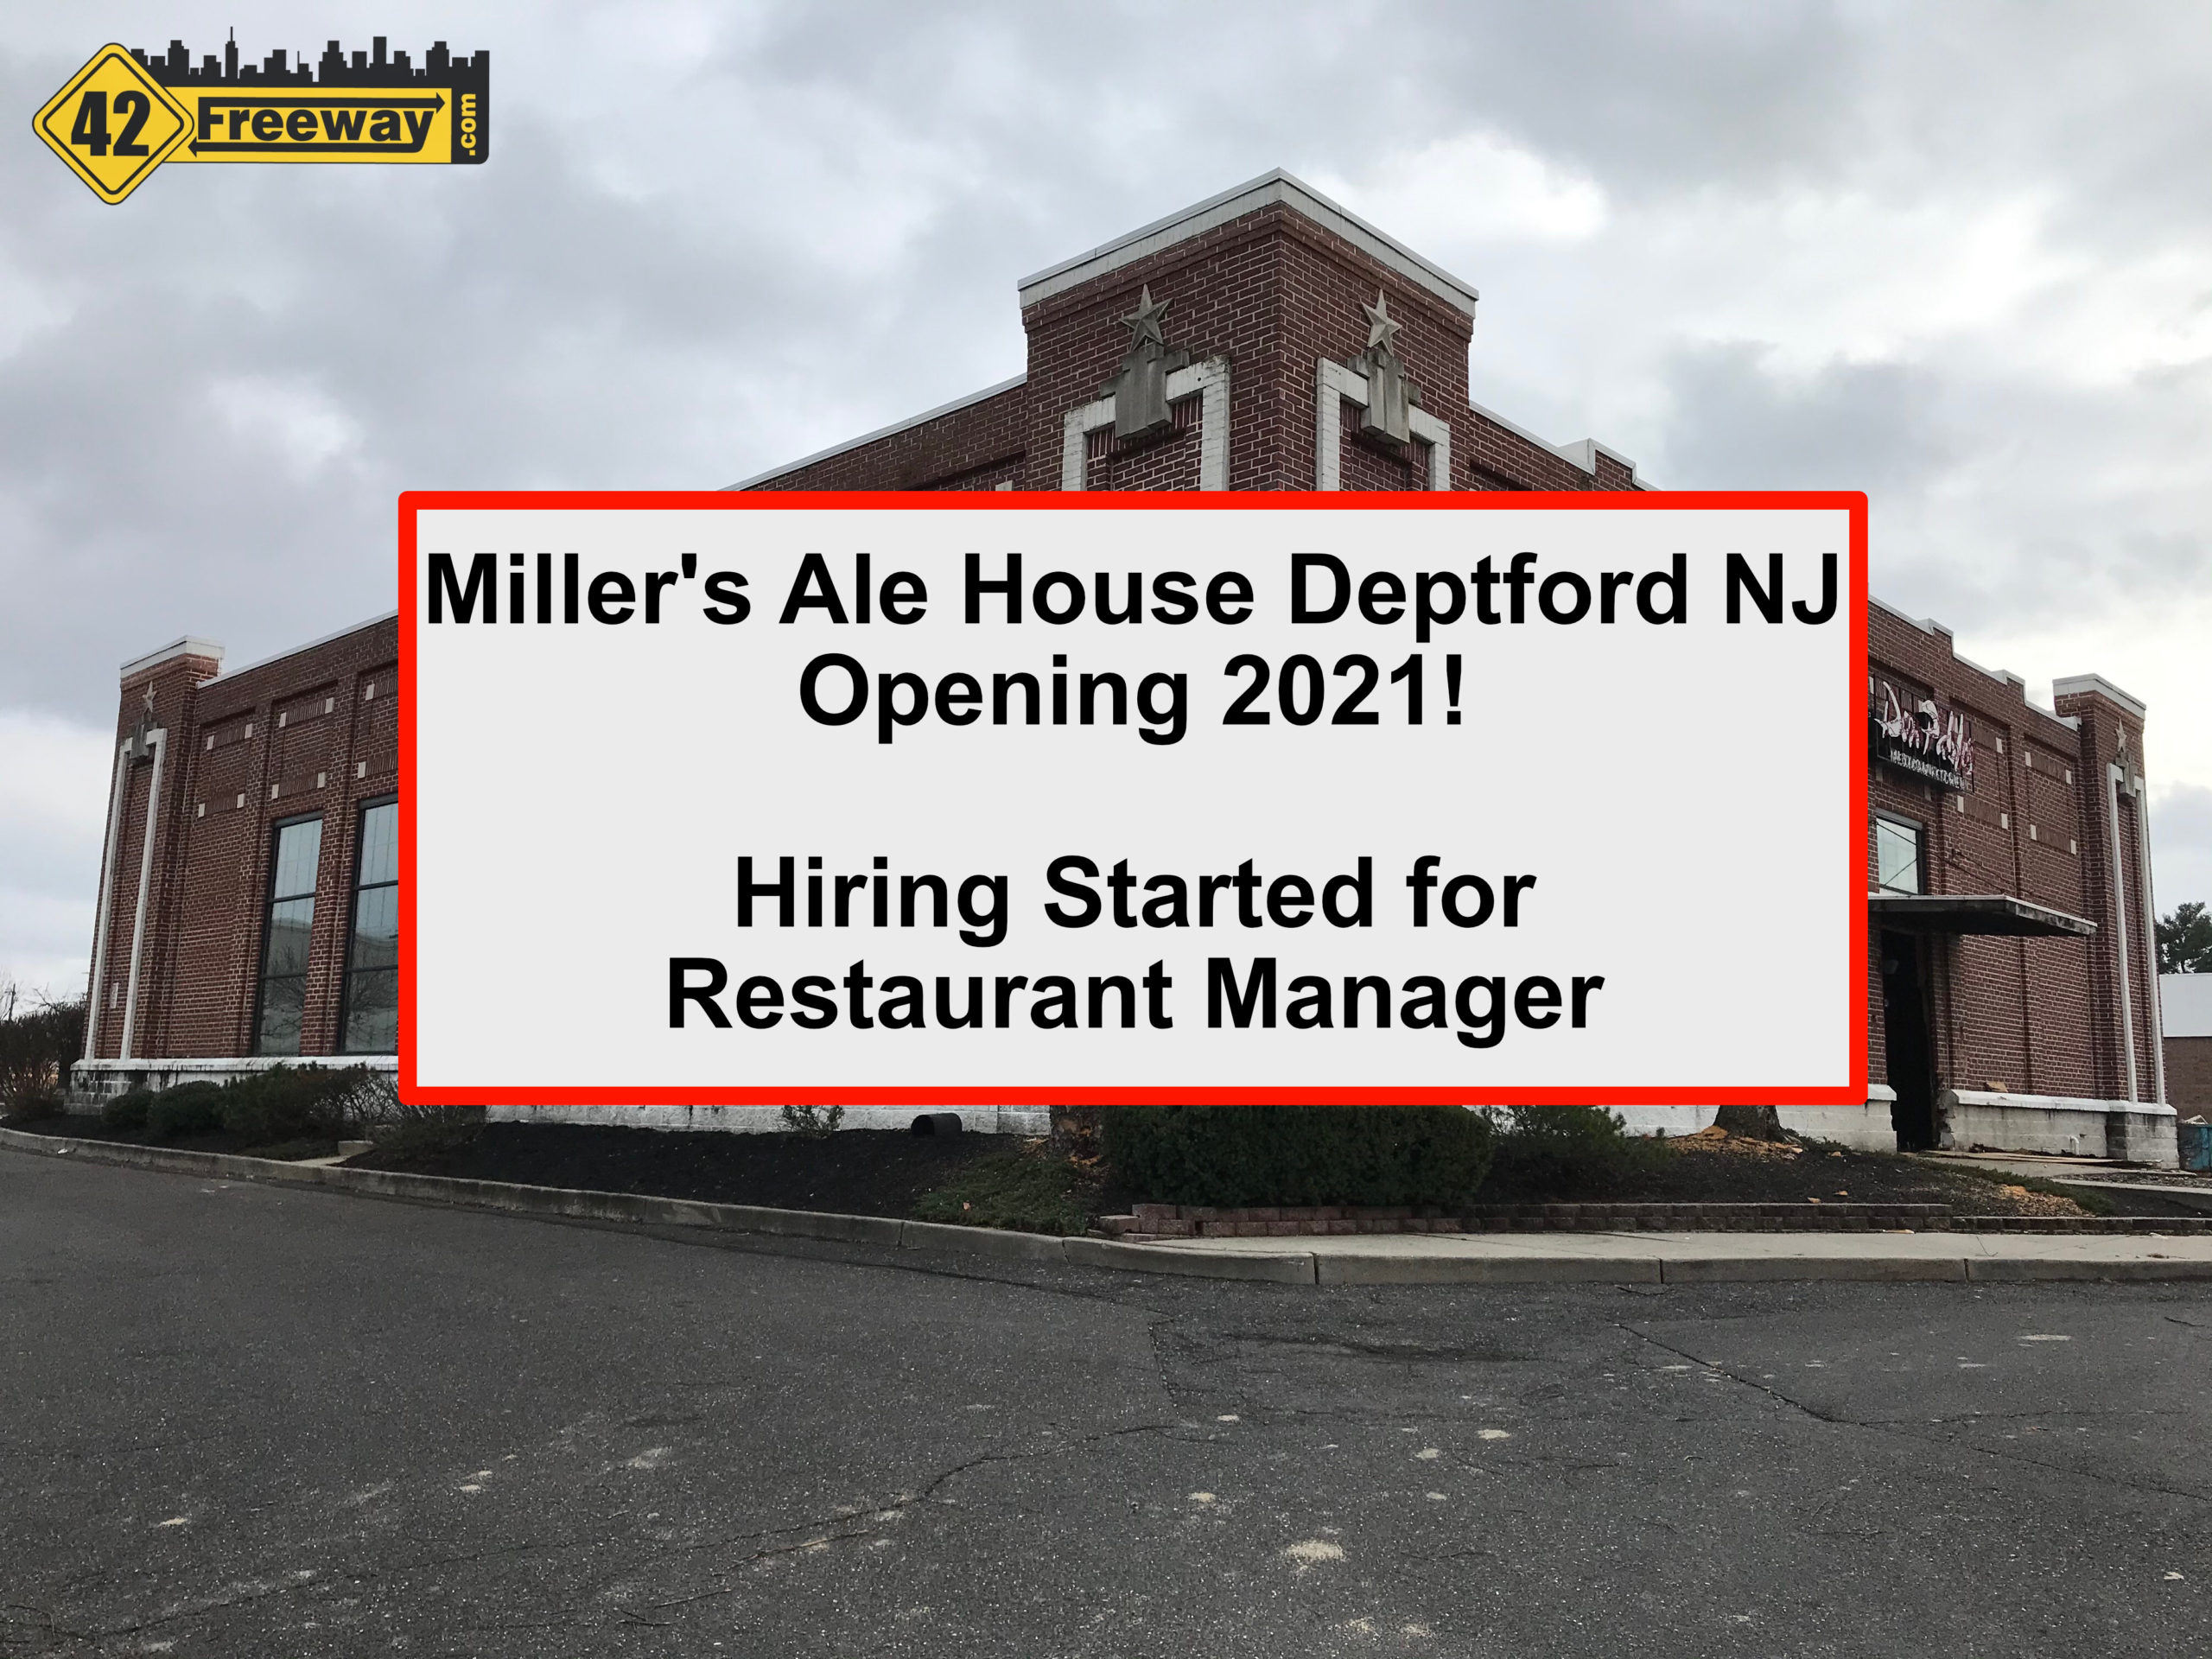 Miller's Ale House Deptford WILL OPEN IN 2021!  Actively Recruiting for Restaurant Manager!